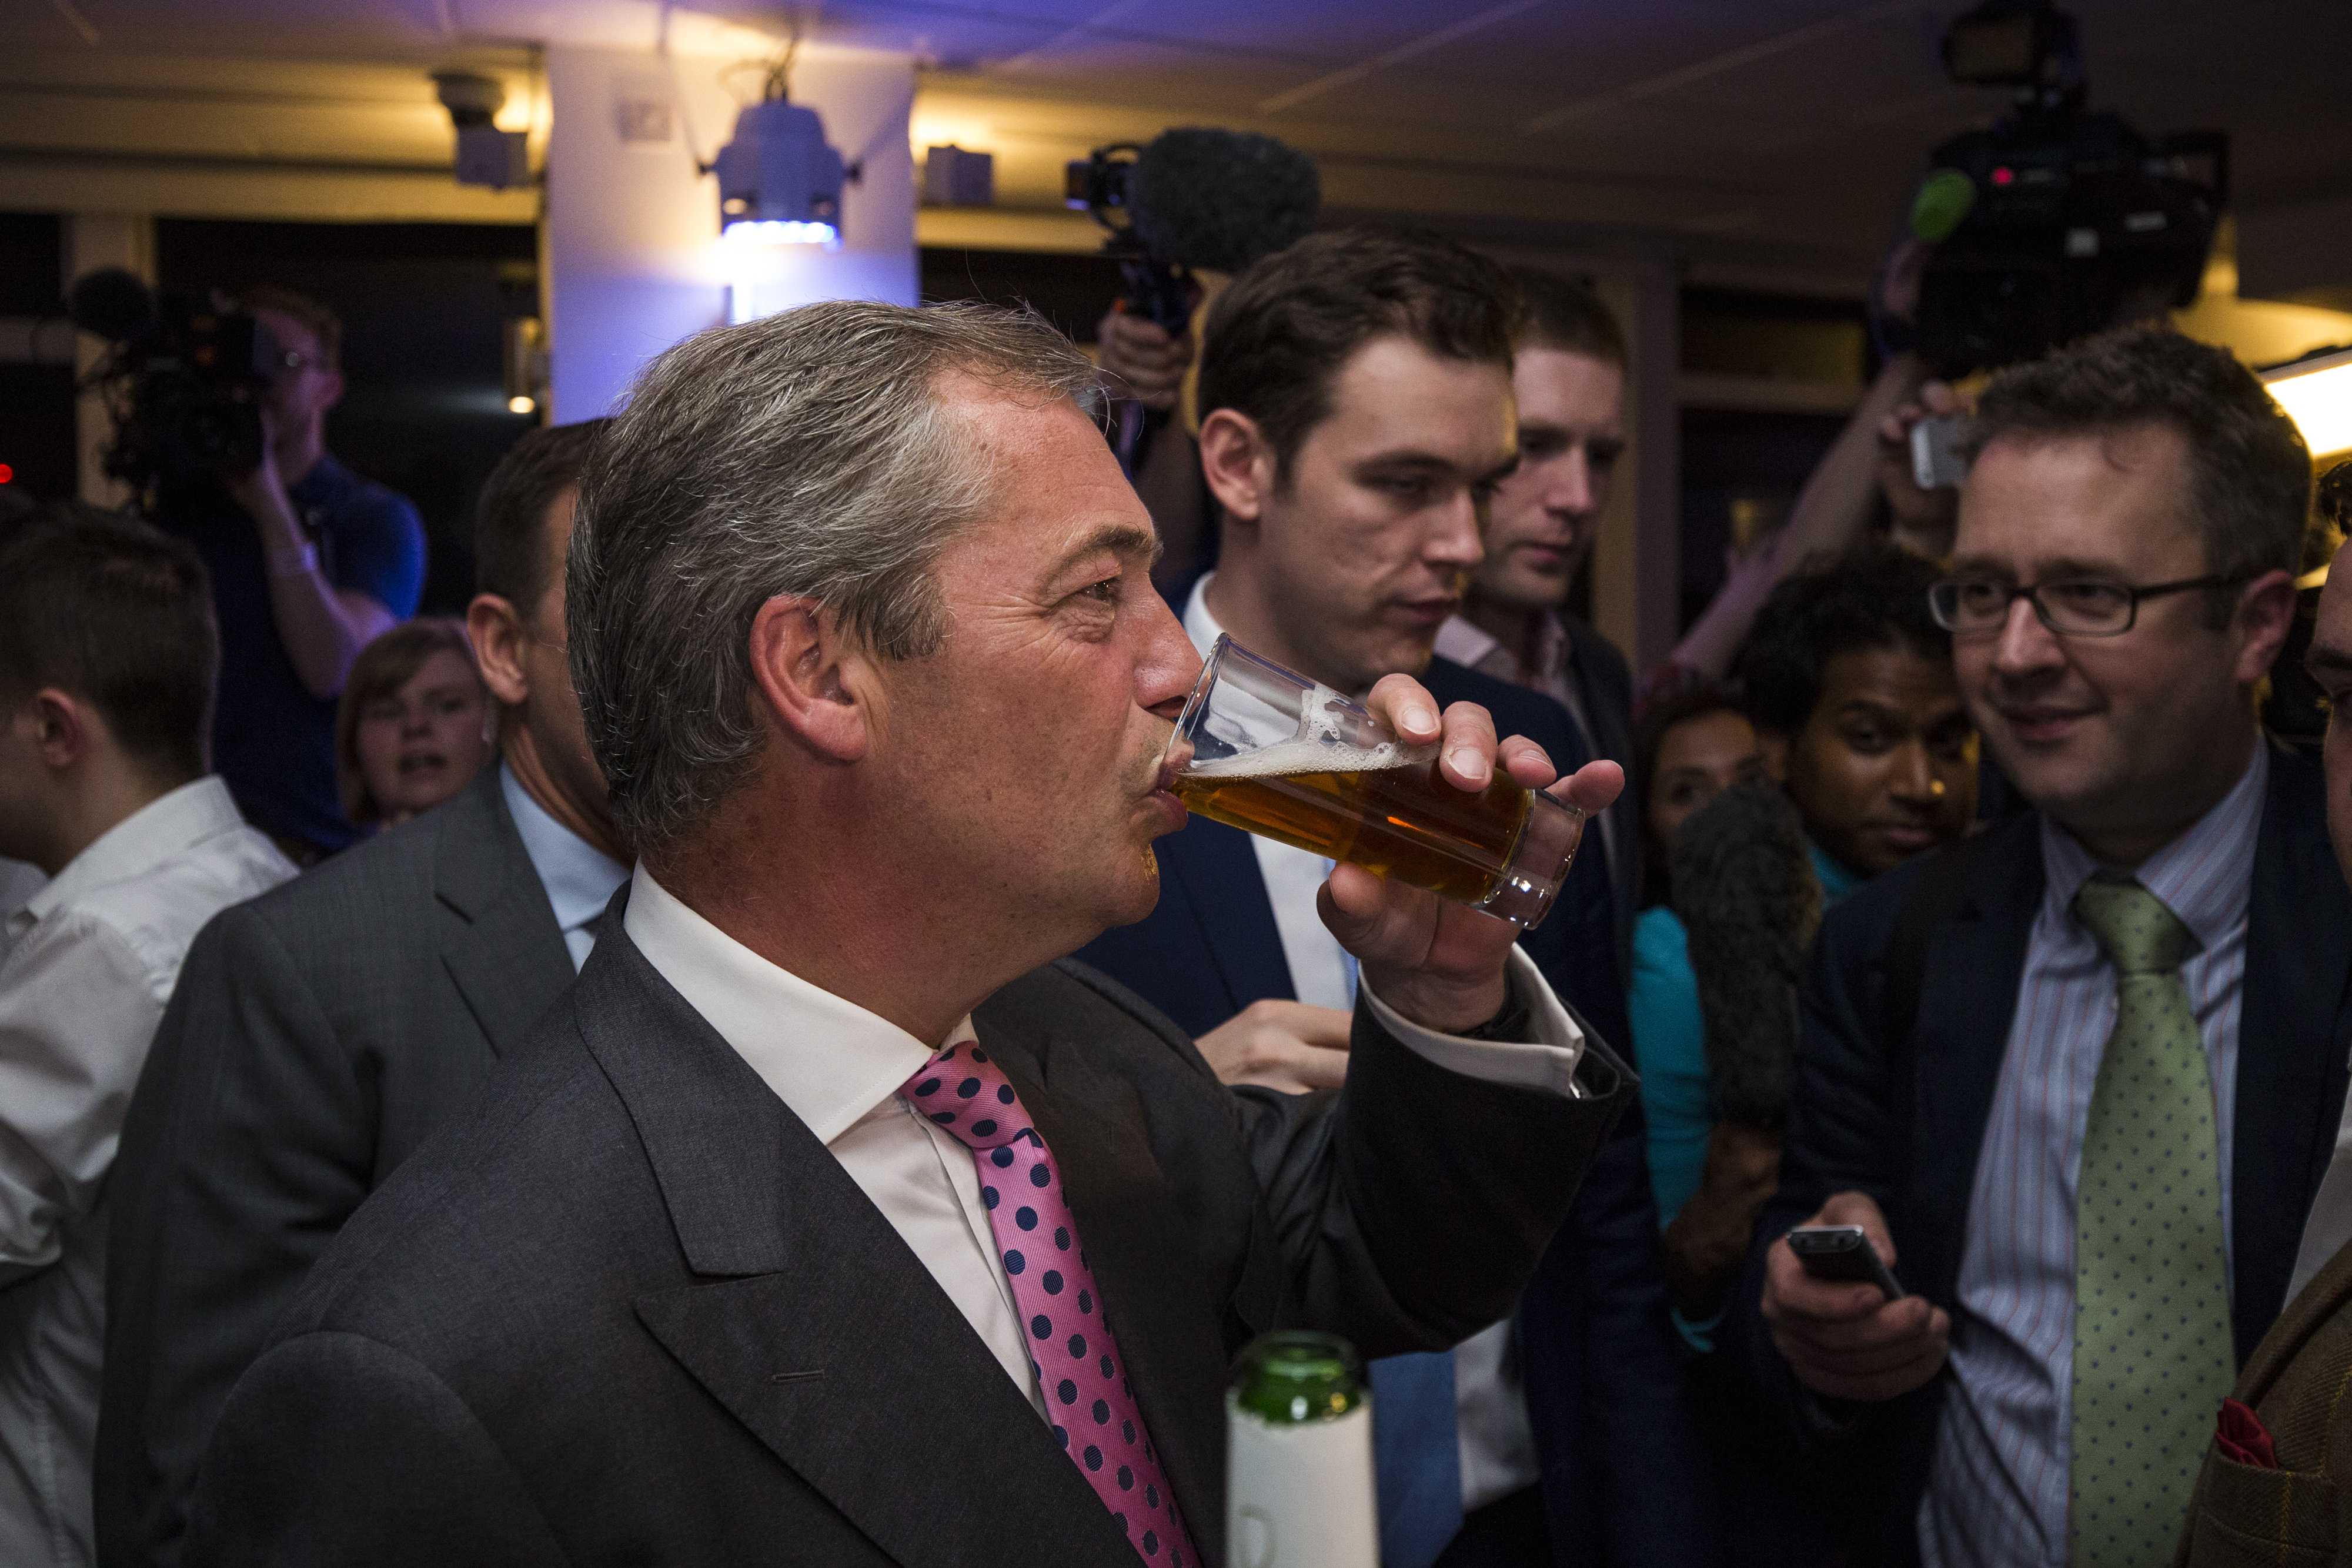 """UK Independence Party Leader Nigel Farage has a drink at the """"Leave"""" campaign's referendum party at Millbank Tower on June 23, 2016, in London, England."""